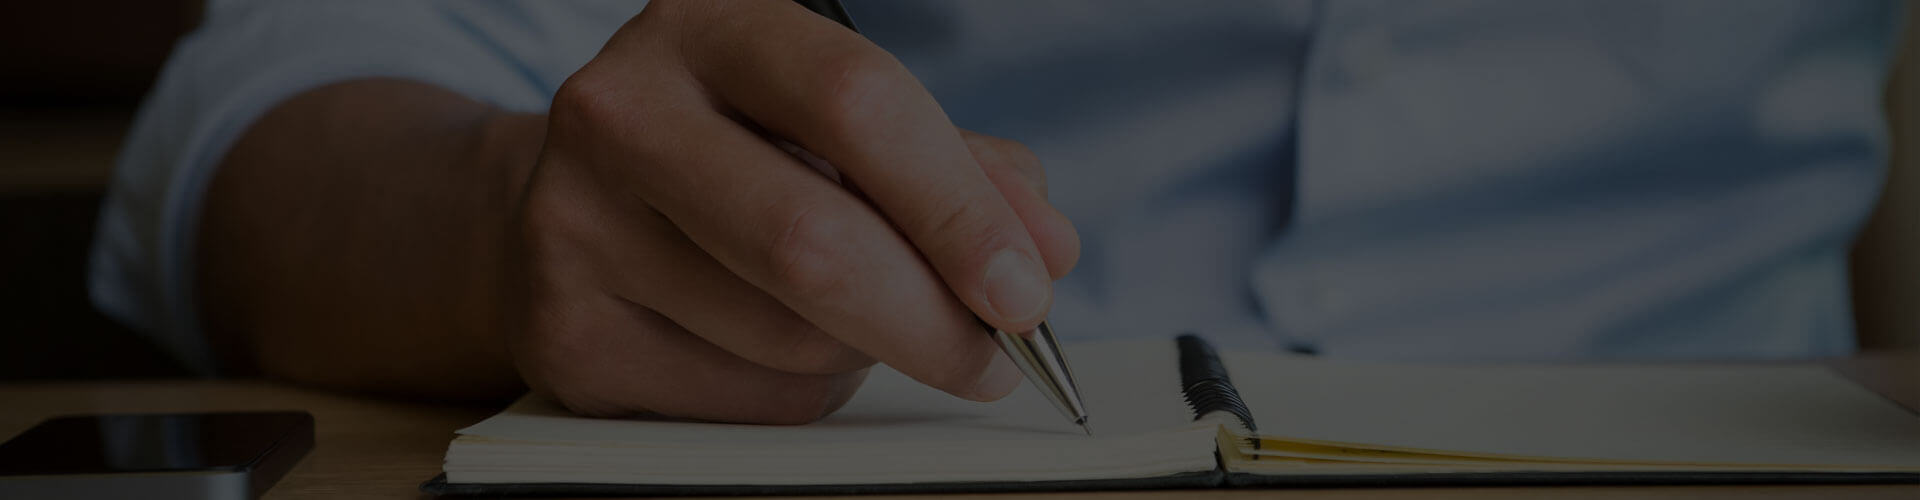 Outsourcing Comment Writing Services India sell